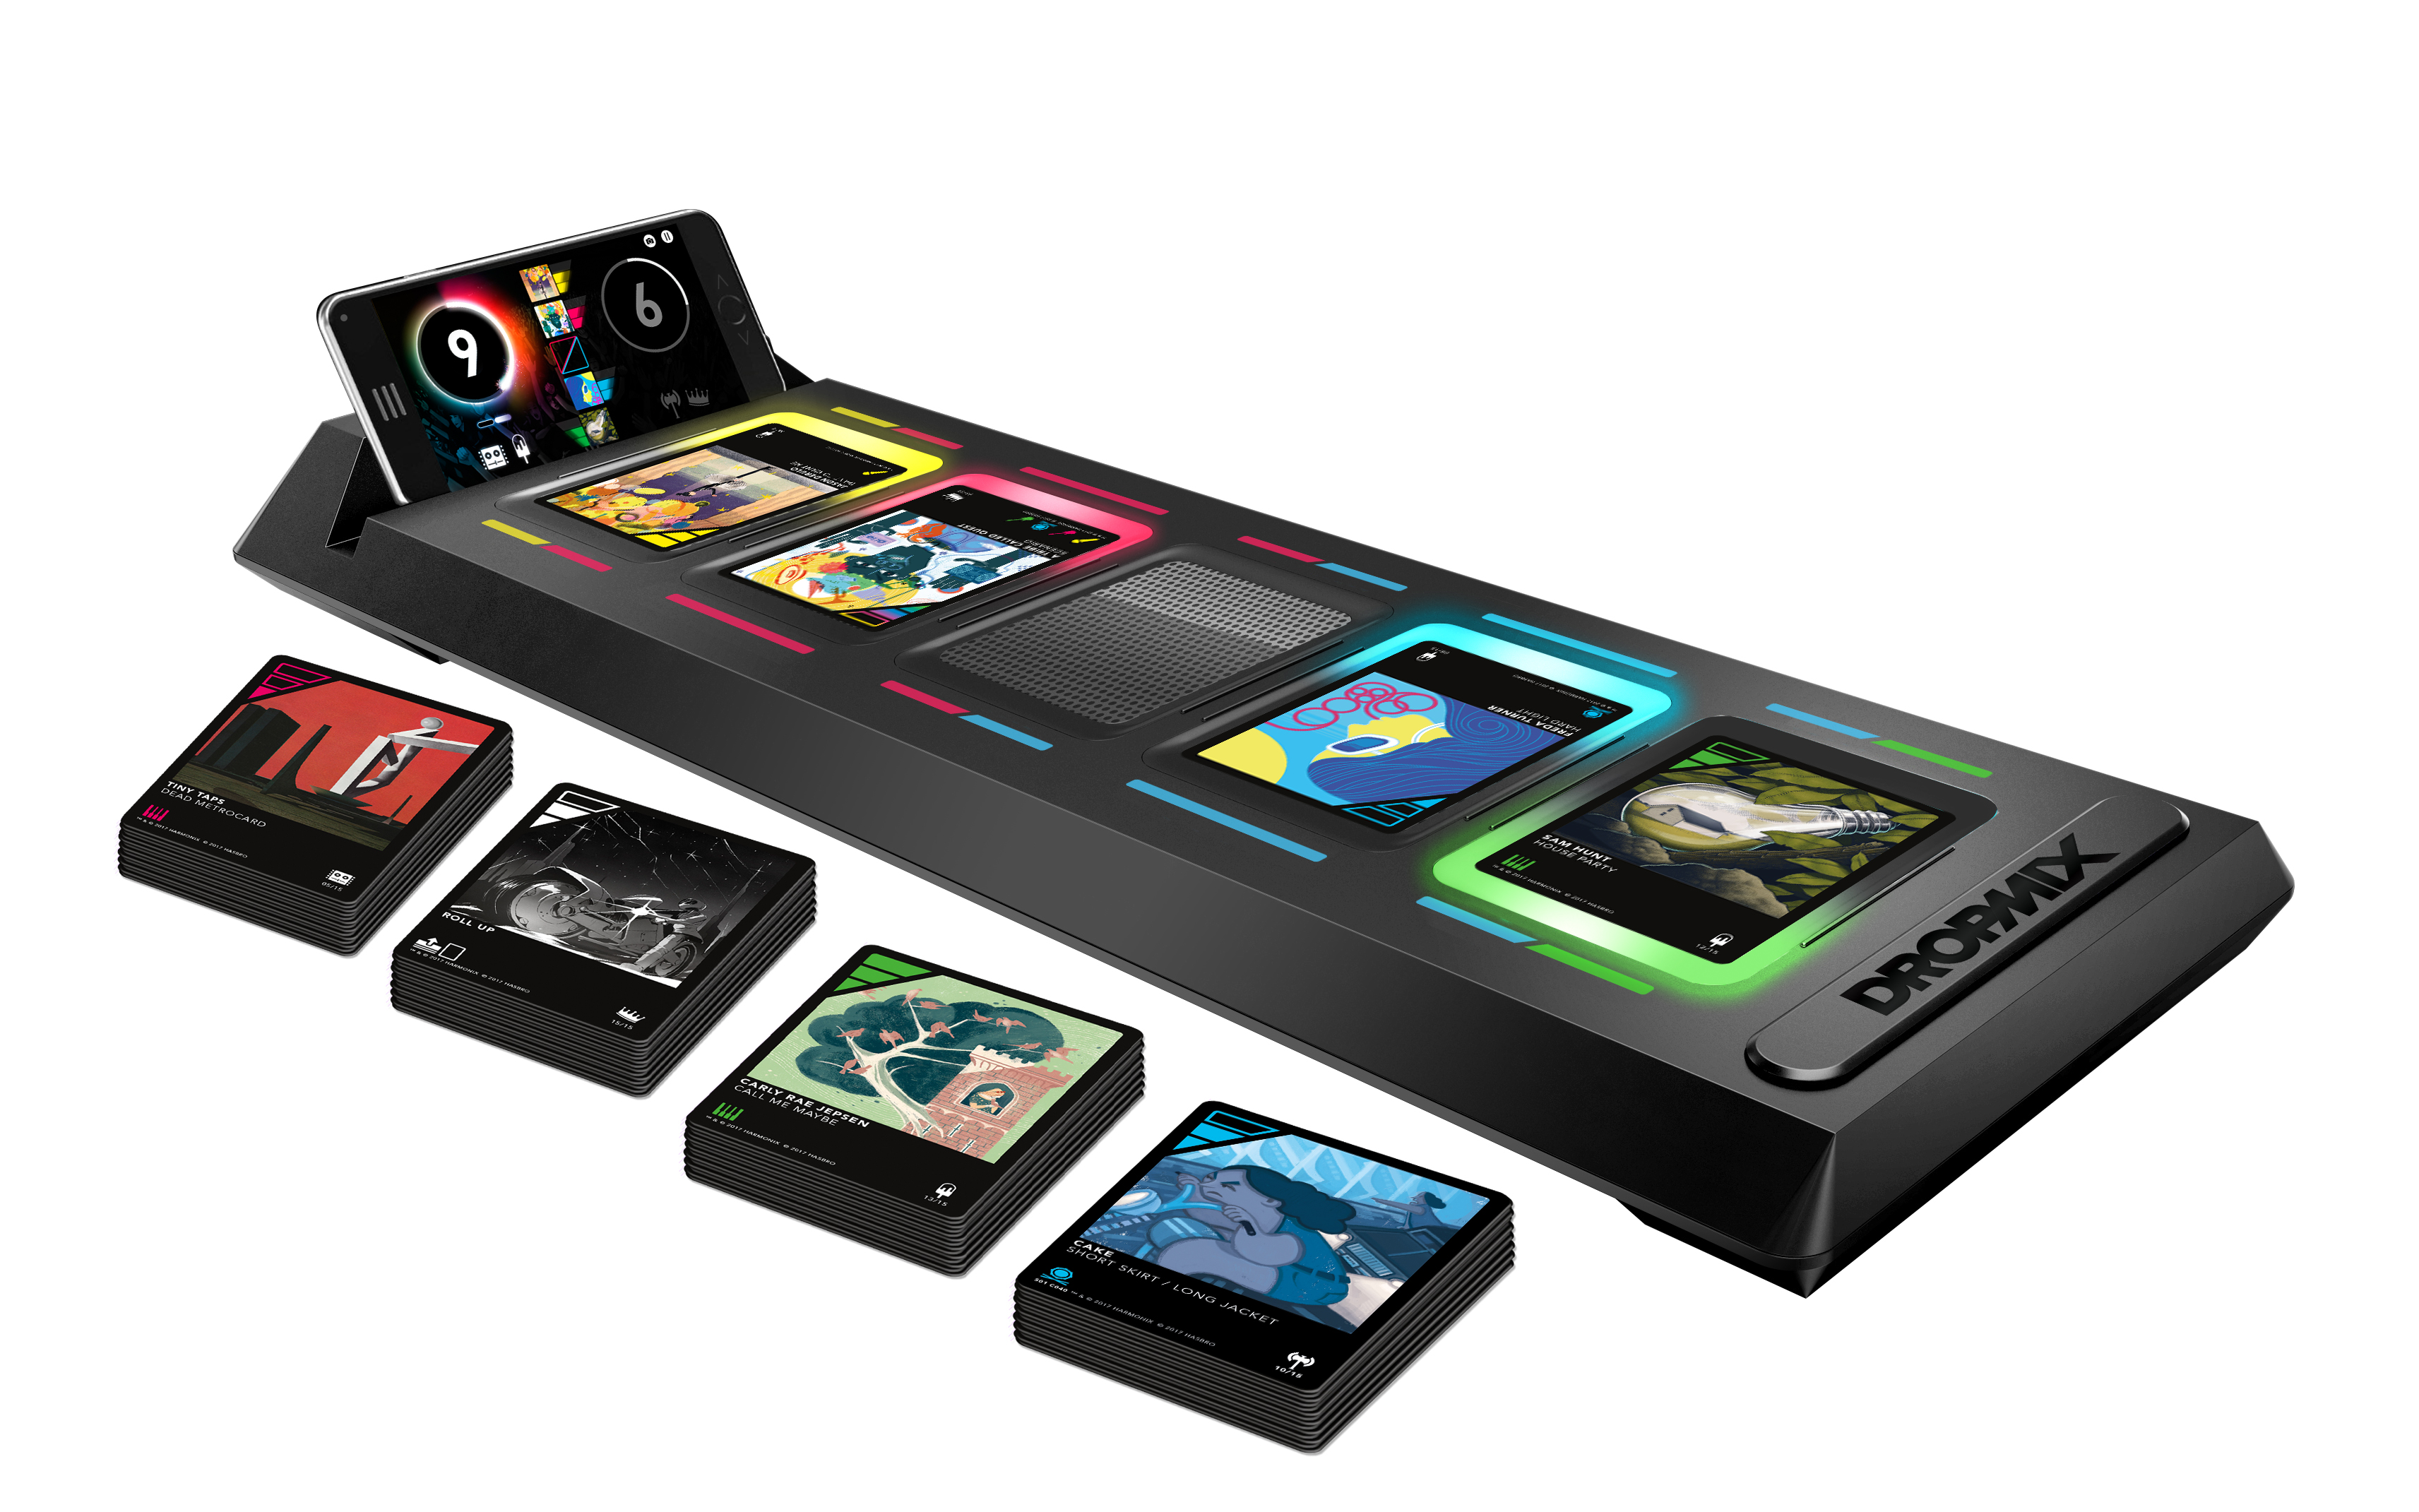 Hasbro teams with Harmonix for new music-mixing game Dropmix